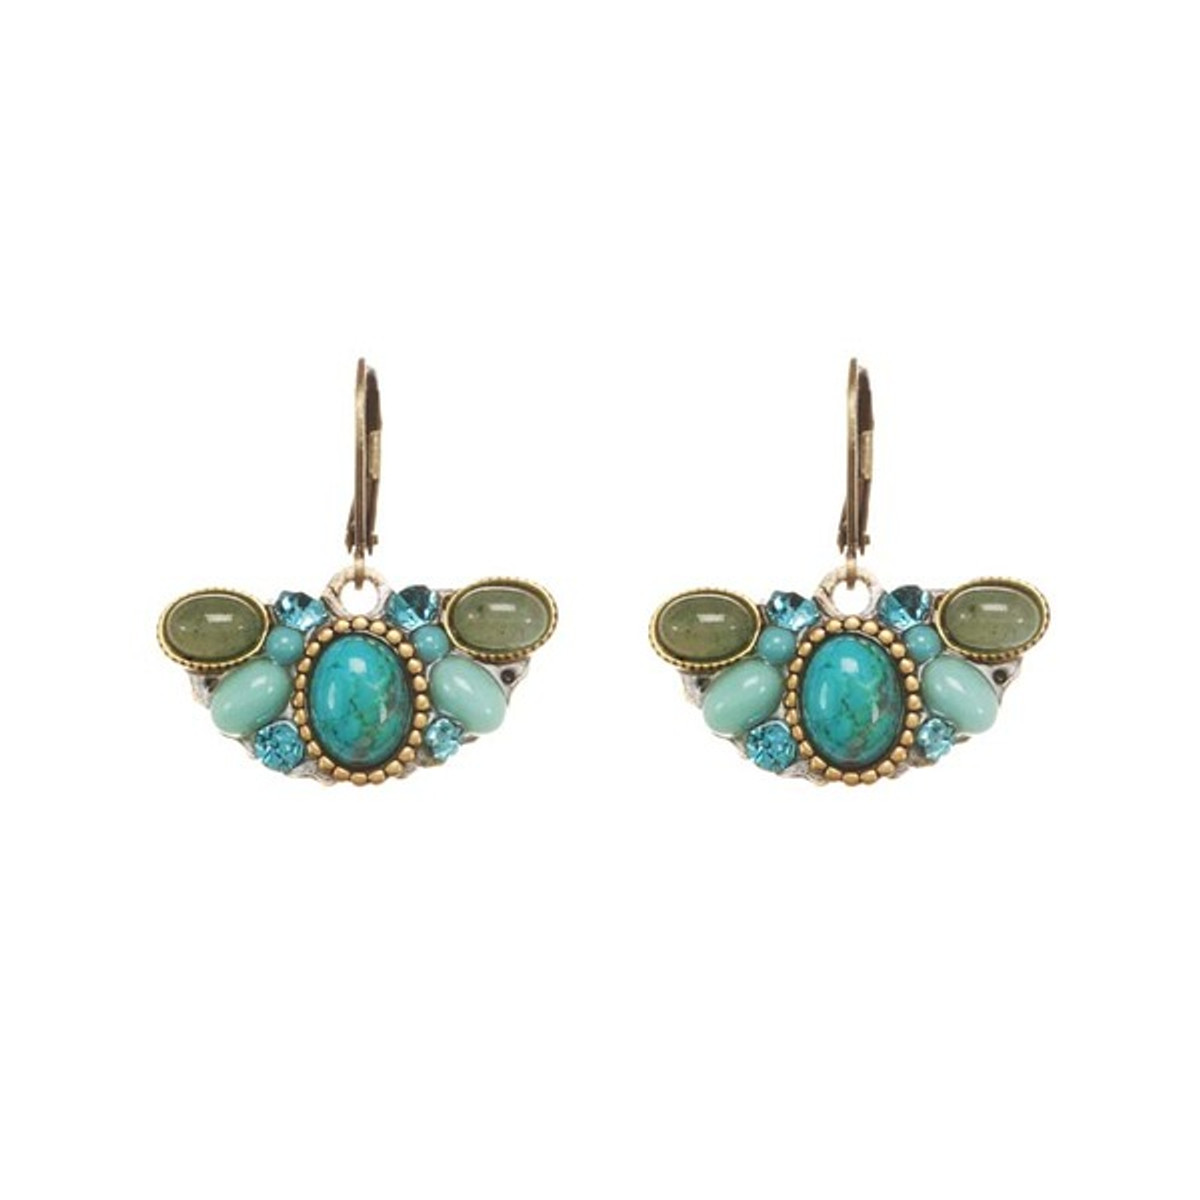 Nile style earrings by Michal Golan Jewelry